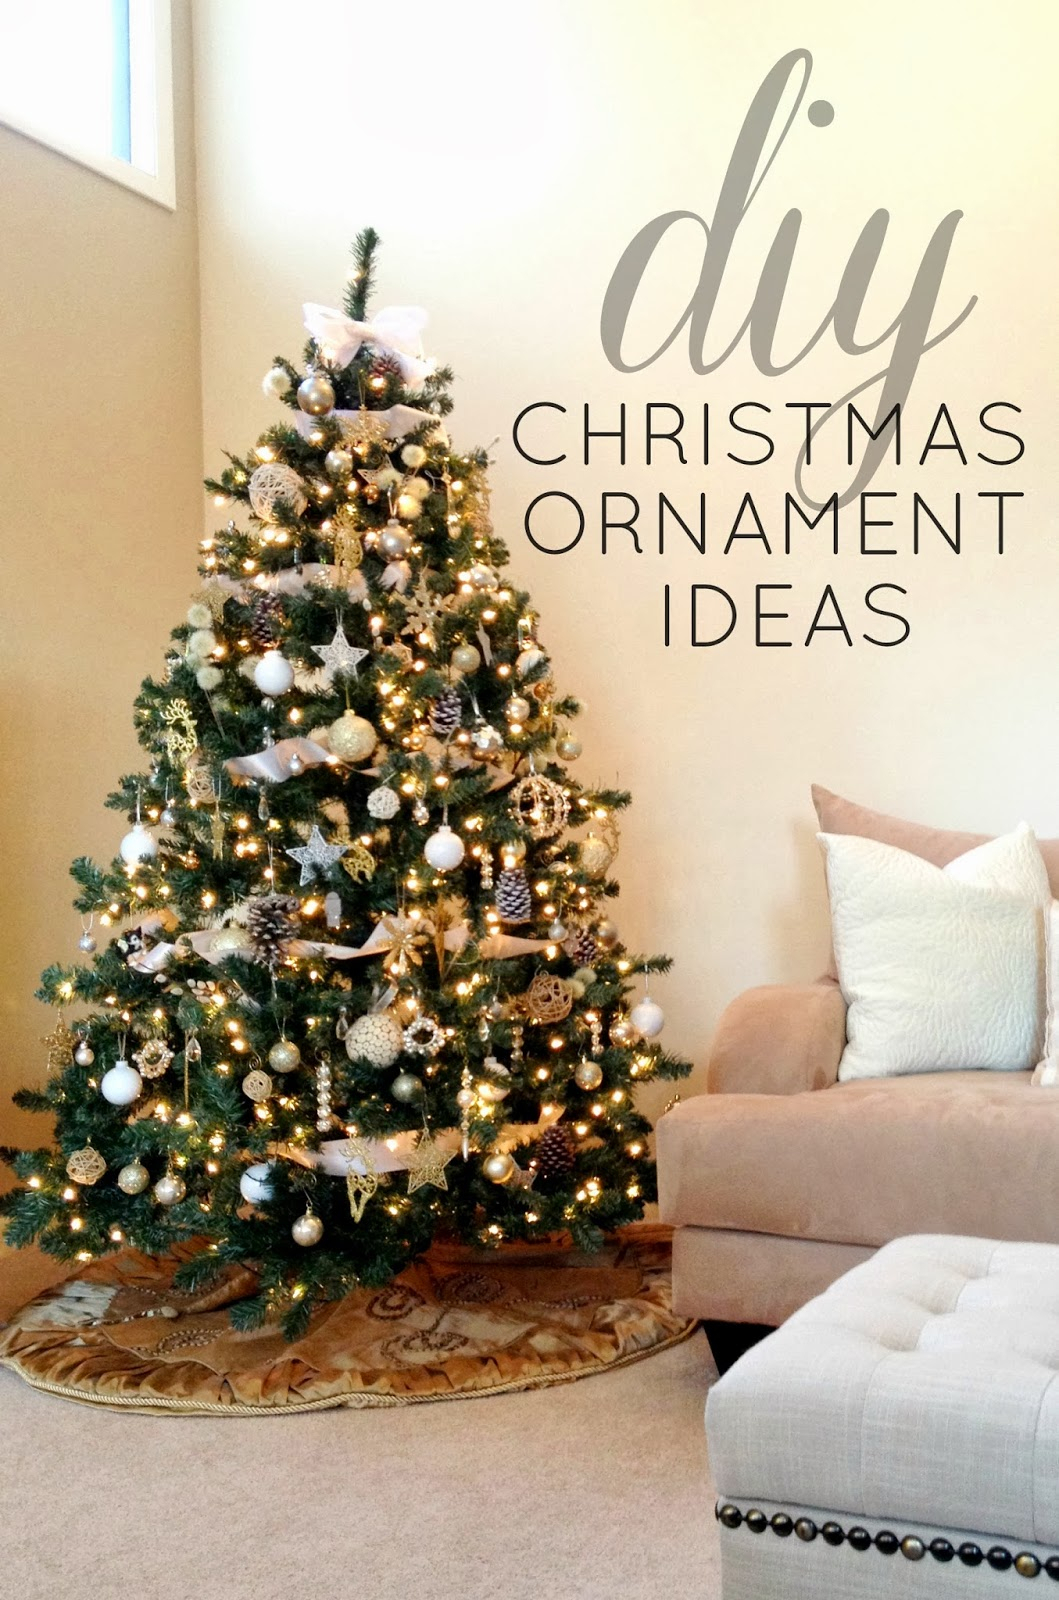 10 Attractive Ideas For Christmas Decorations To Make livelovediy diy christmas ornaments ideas